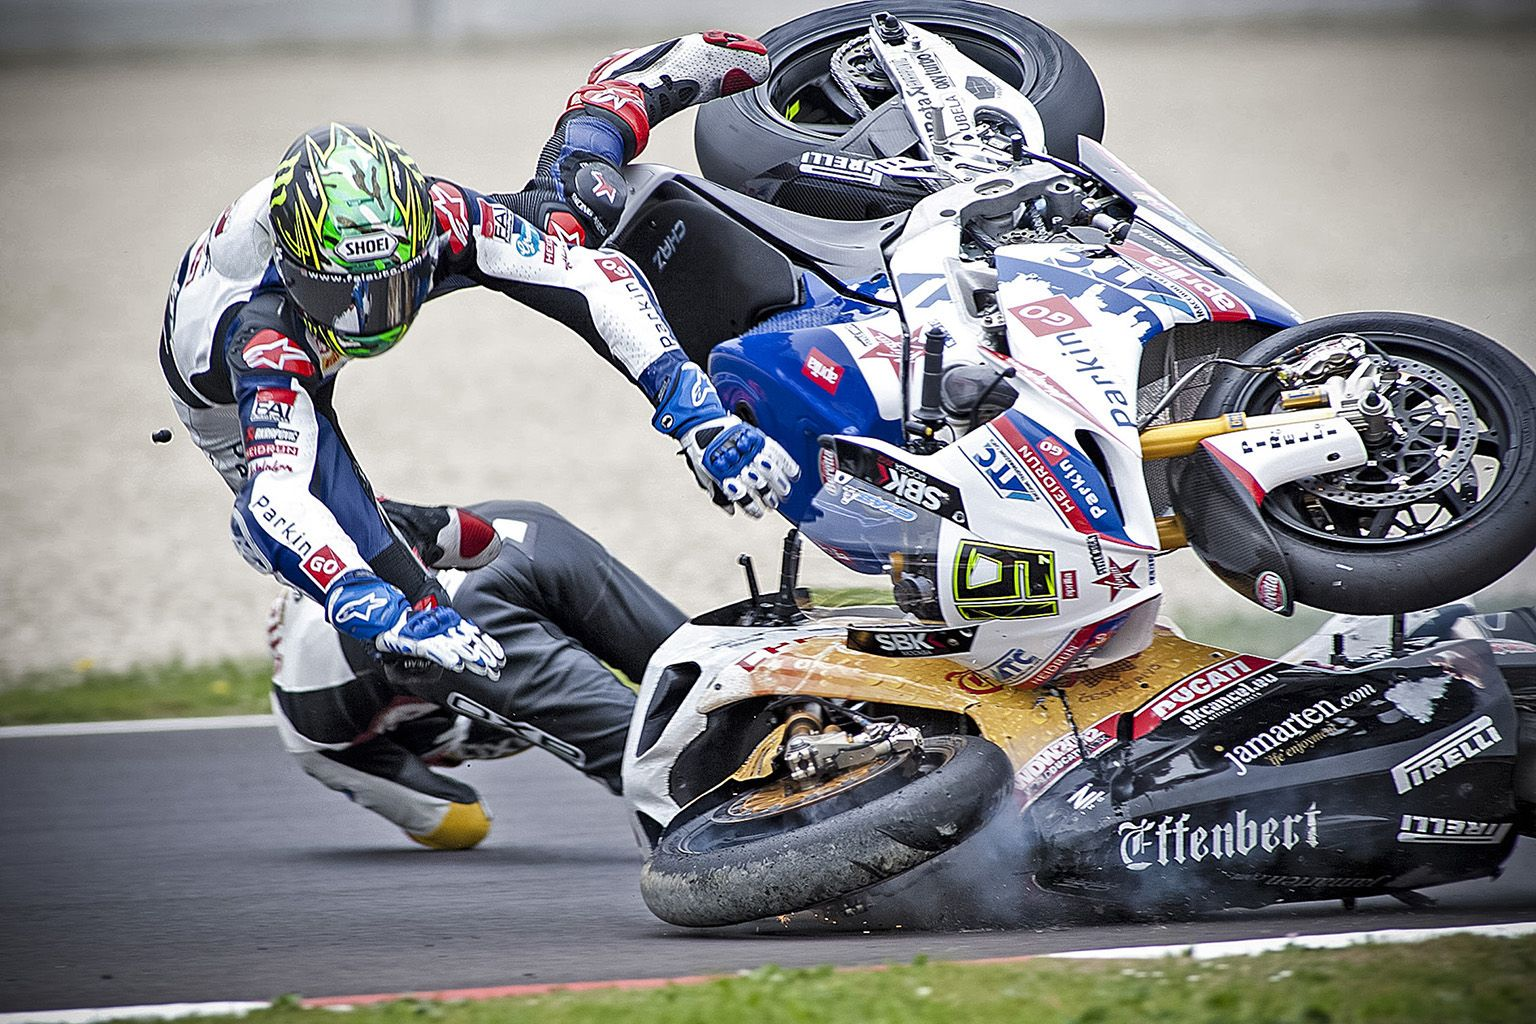 Categoria sport - SUPERBIKE IMOLA 2012 INCIDENTE TRA SYLVAIN GUINTOLI E CHAZ DAVIES